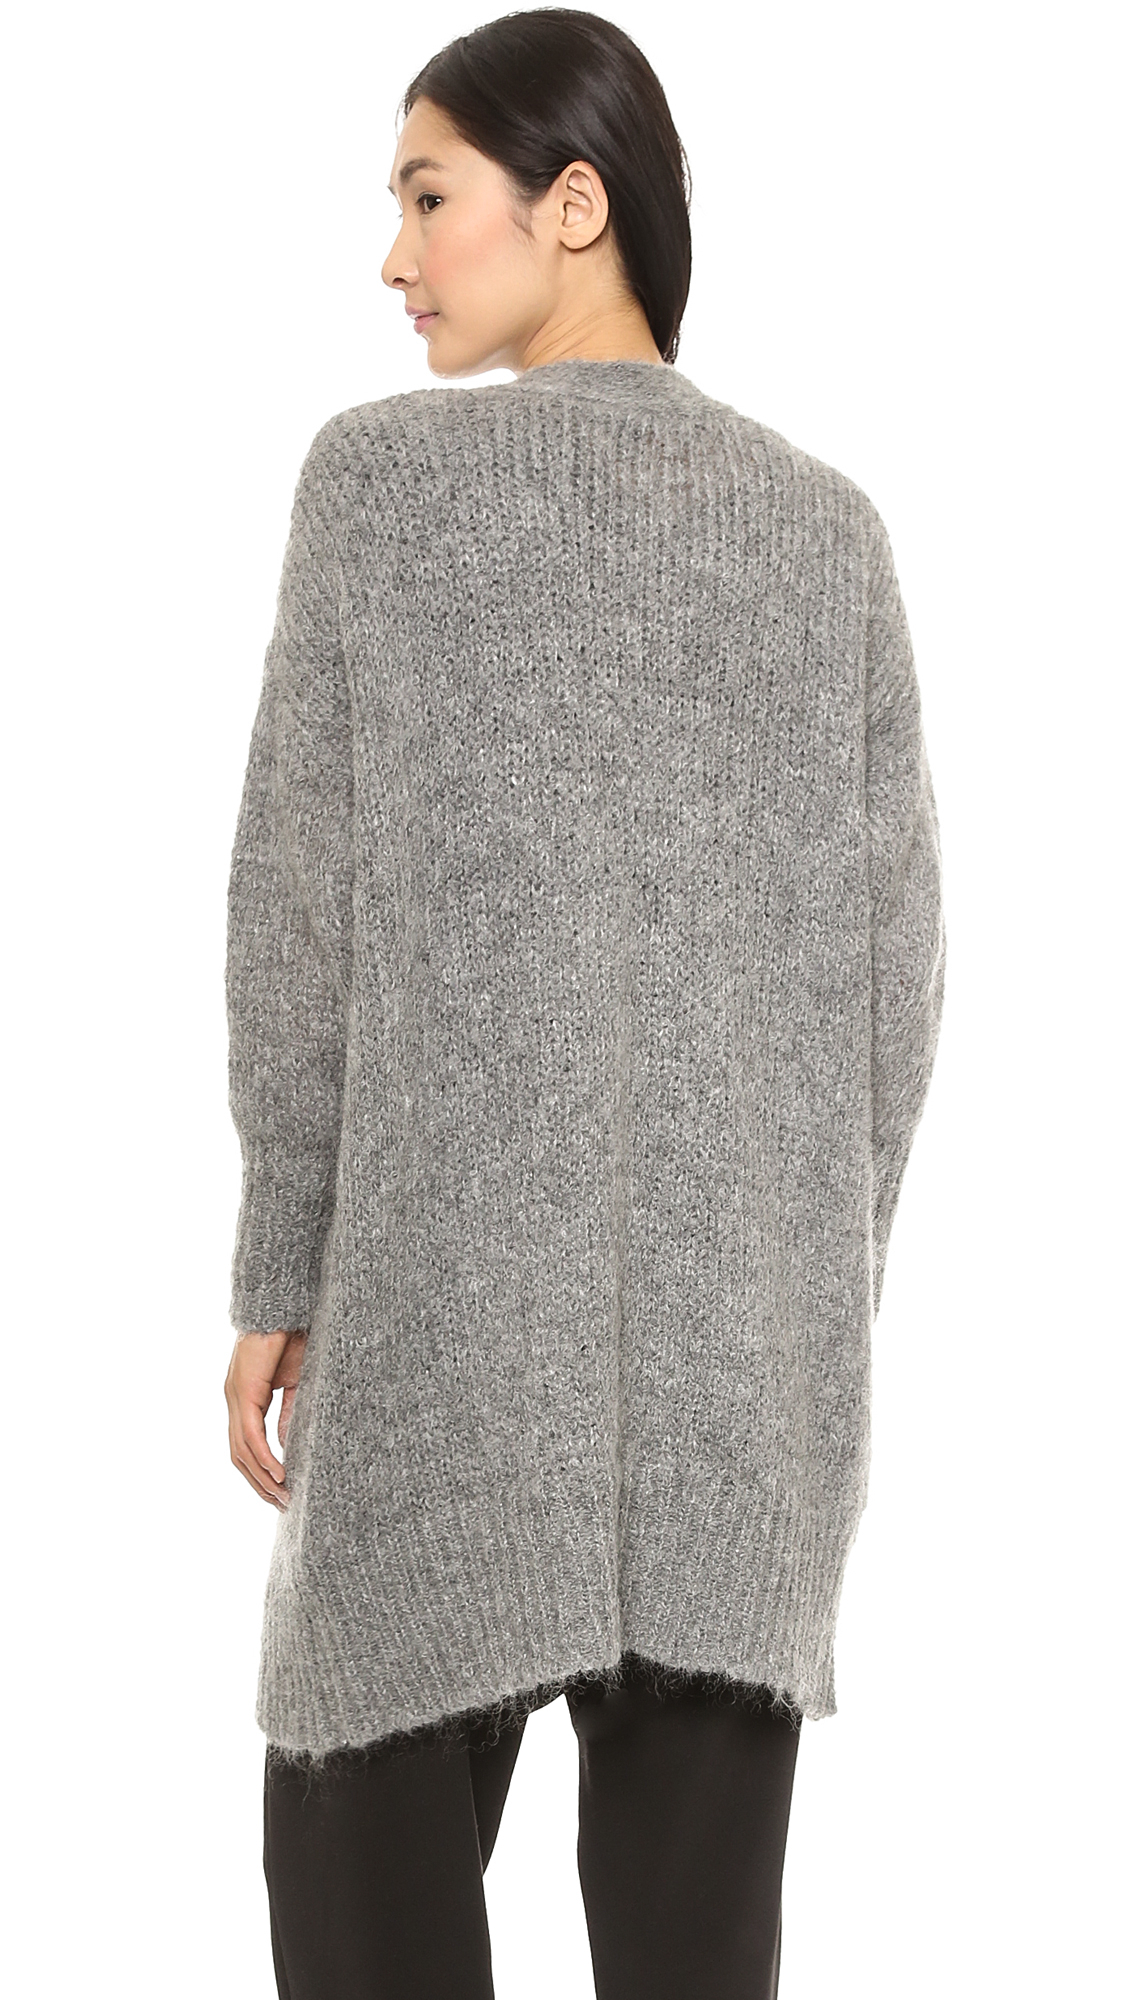 Dkny Long Sleeve Open Front Cardigan Heather Grey in Gray | Lyst